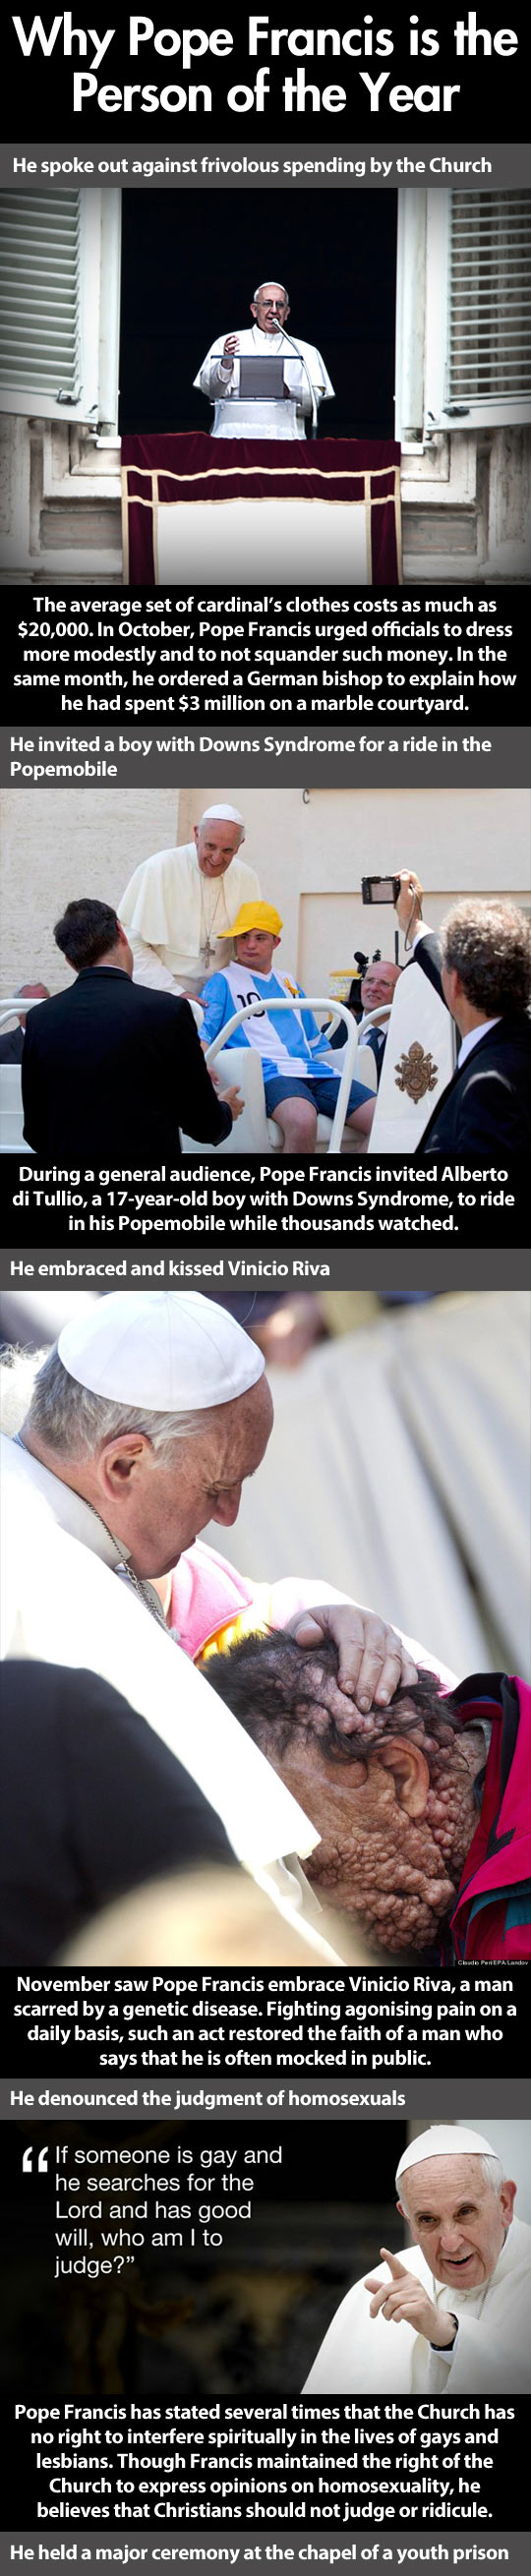 Pope is the person of the year...